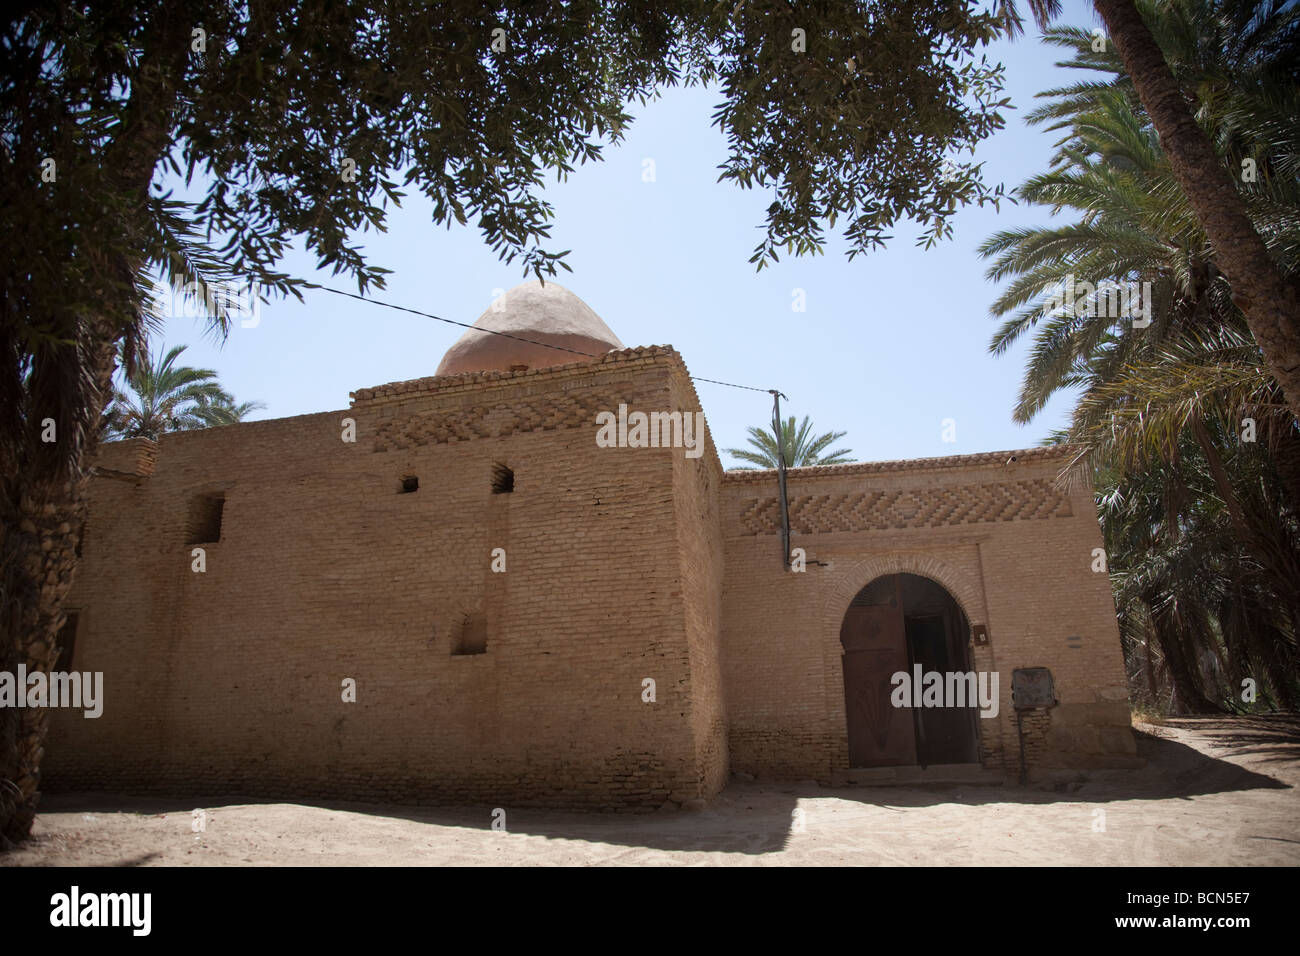 A mosque in the Tozeur oasis displays the traditional and unique brickwork of Tozeur, Tunisia. - Stock Image